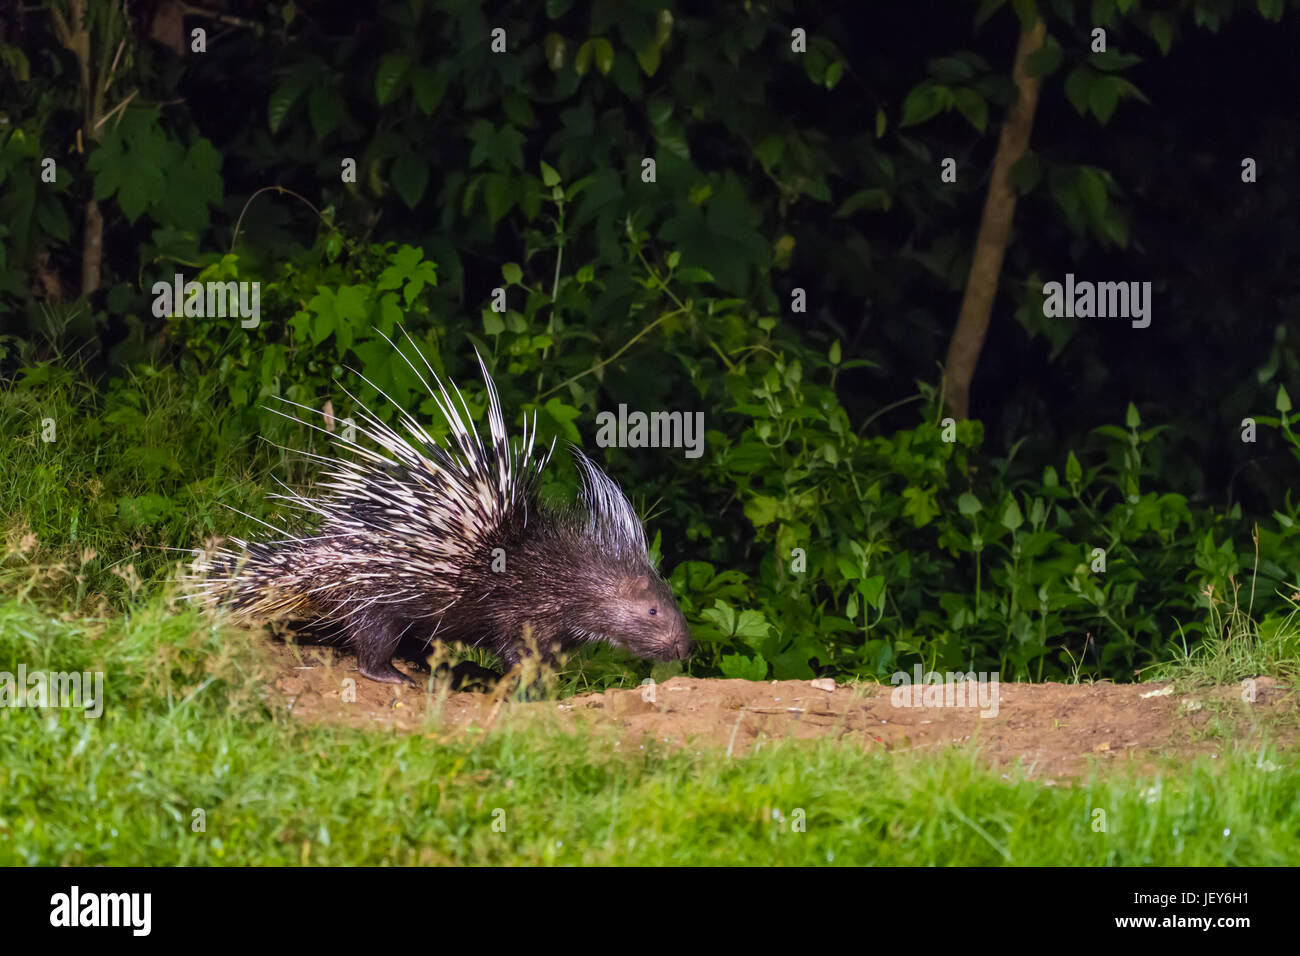 Malayan porcupine (Hystrix brachyura) in nature at night time - Stock Image